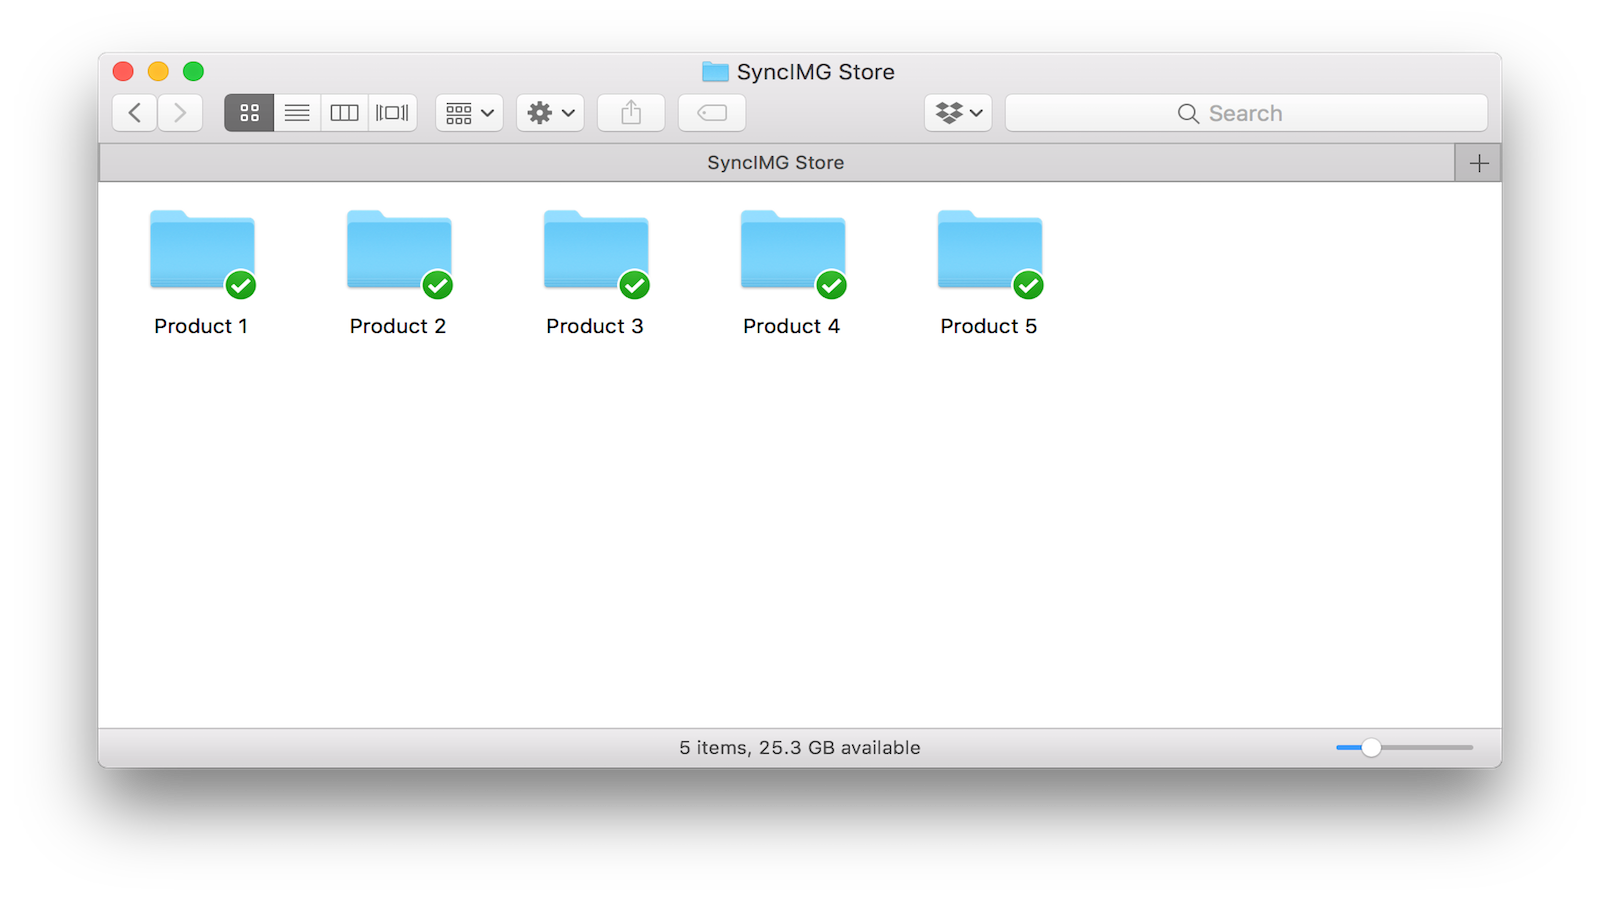 Manage Images in Dropbox Folder